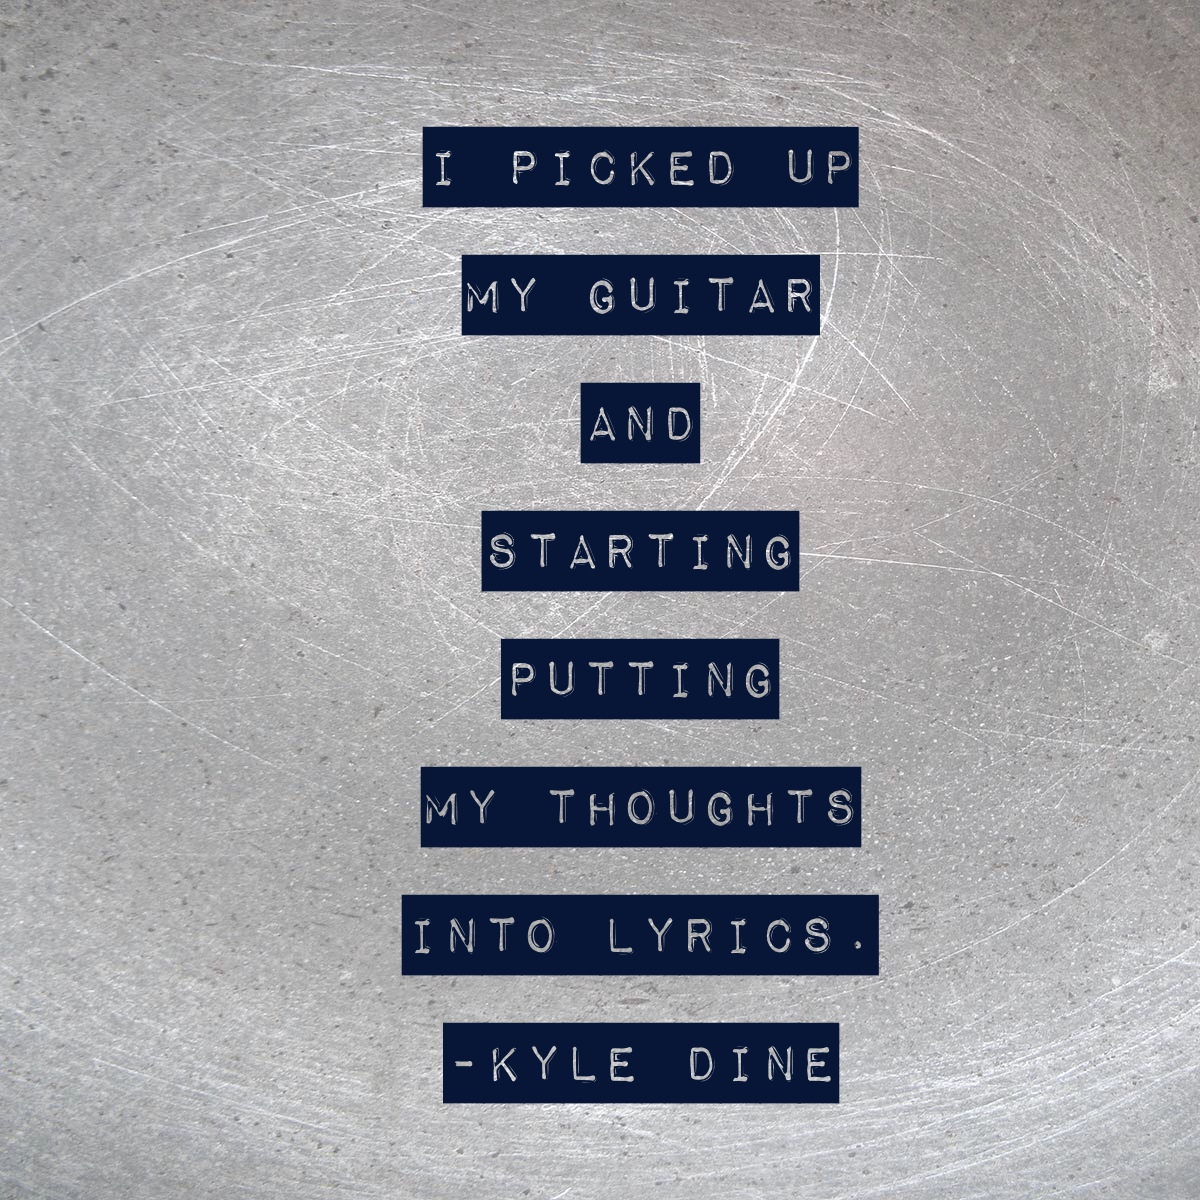 Kyle Dine Quote